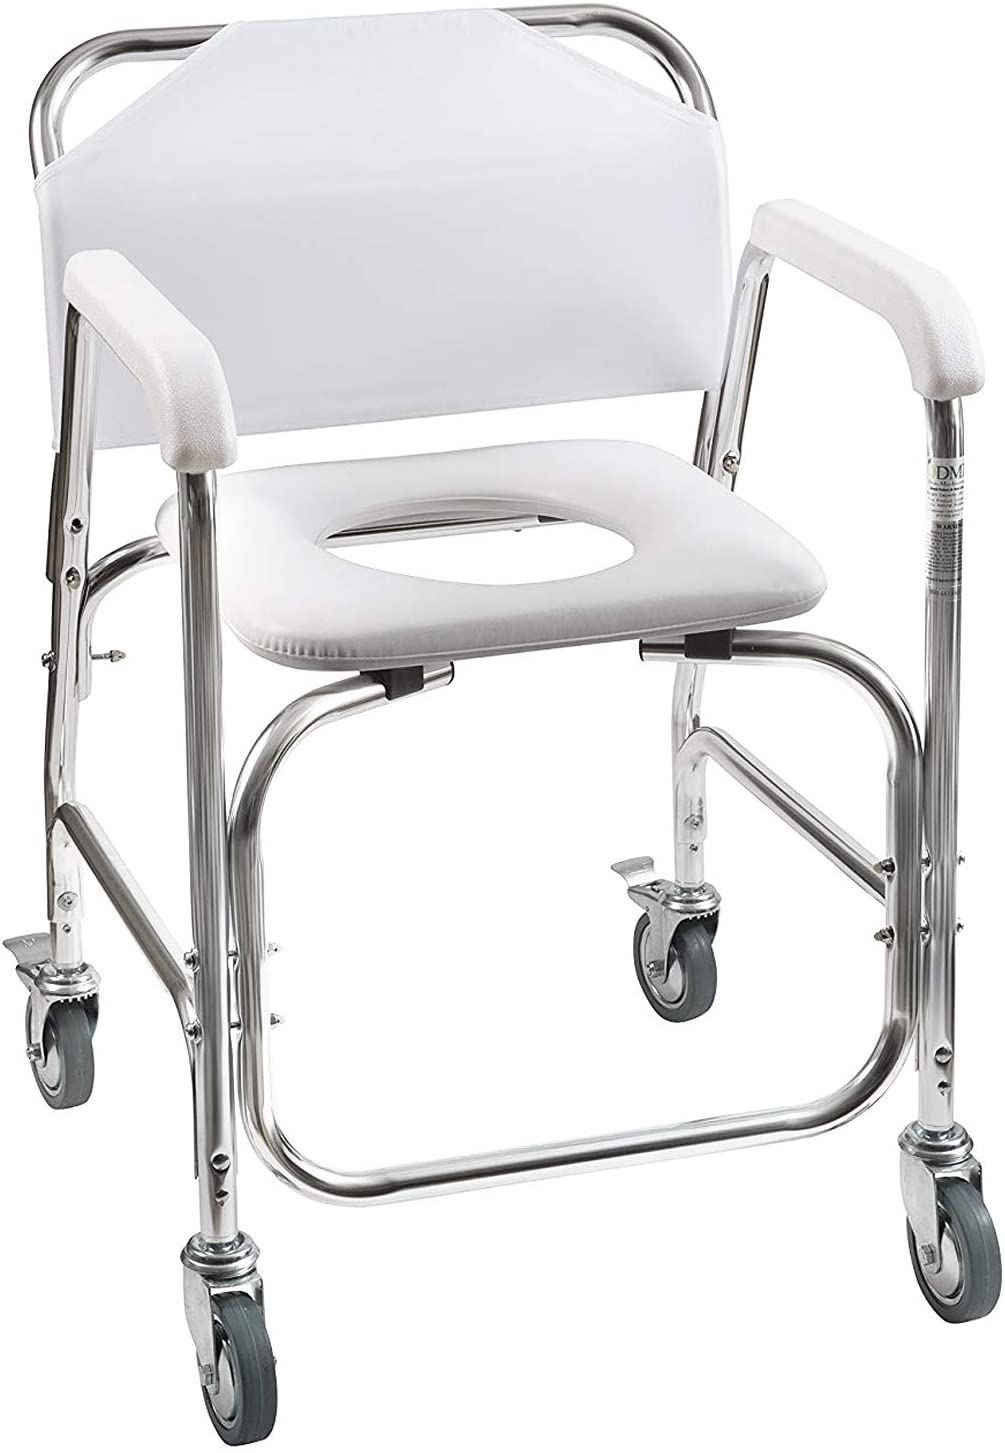 DMI Rolling Shower and Commode Transport Chair with Wheels and Padded Seat  for Handicap, Elderly, Injured and Disabled, 10 lb Weight Capacity